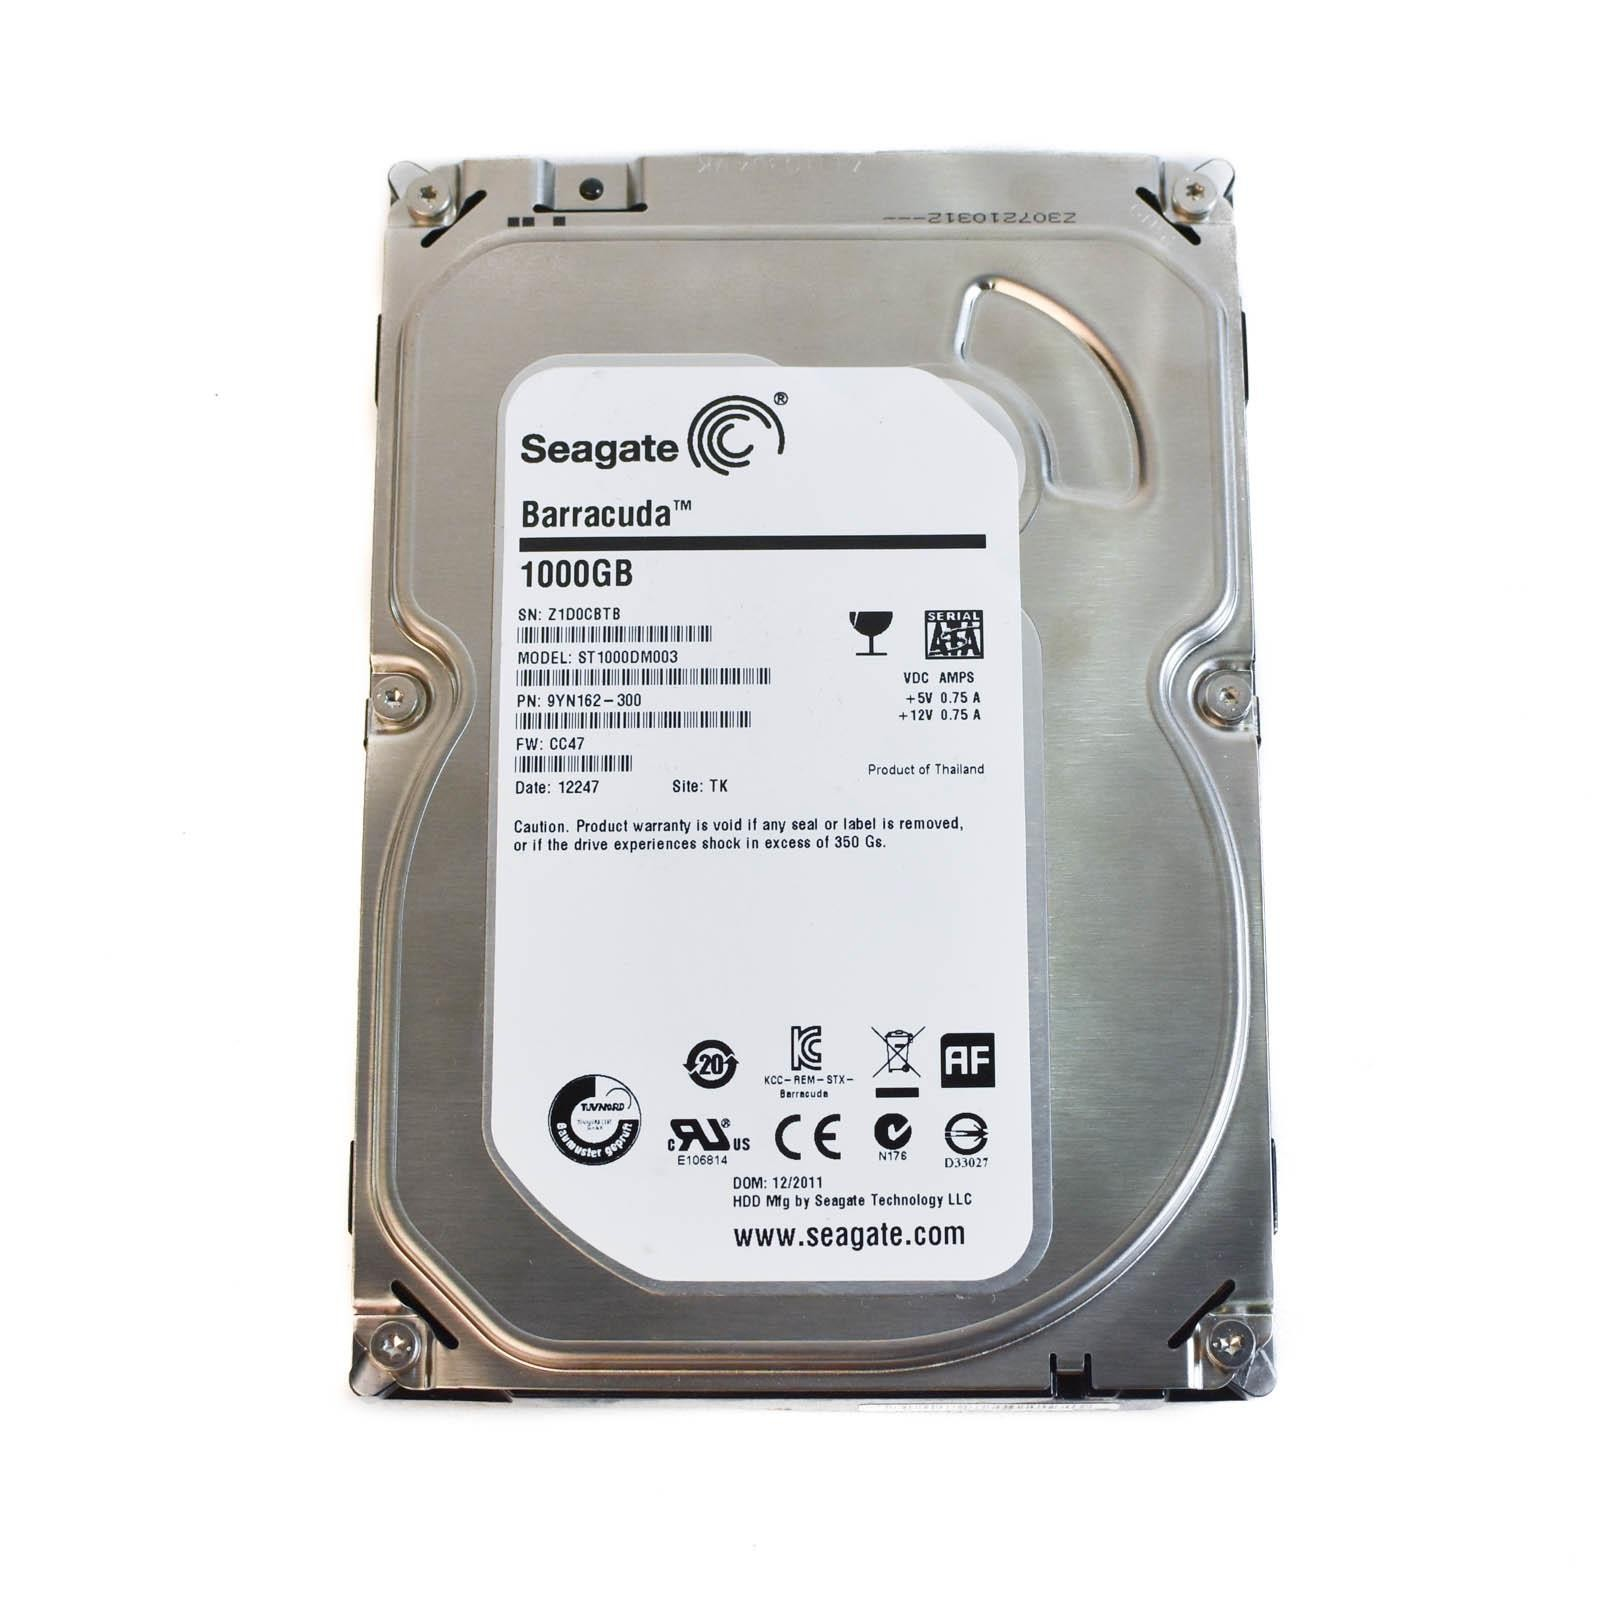 Seagate 1tb 72k 35 Sata Iii 6gbps 64mb Cache Hard Drive Barracuda Baracuda St1000dm003 83104 35983 Base Click On Thumbnails To Enlarge